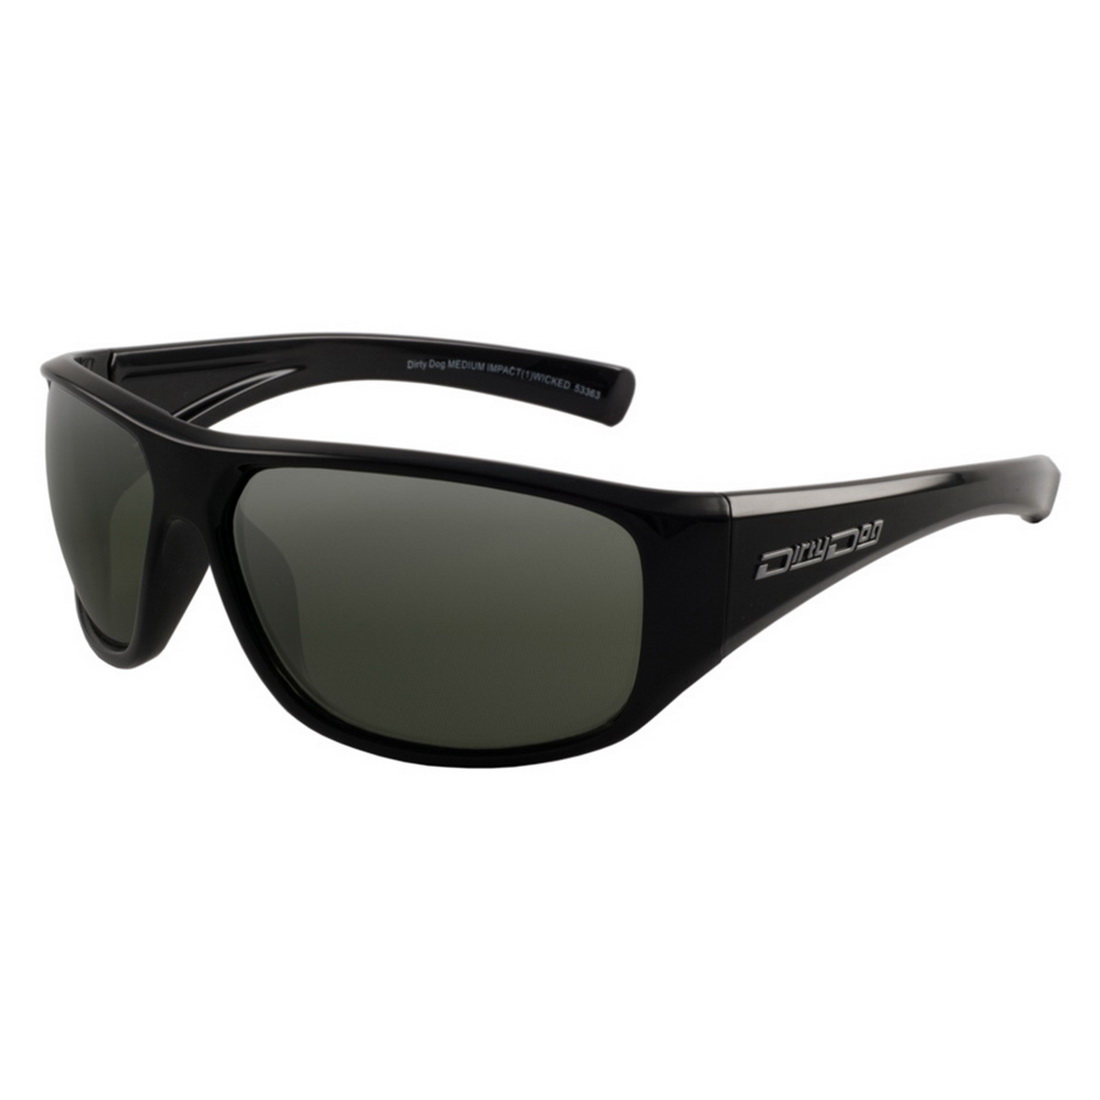 Wicked Safety Glass Black Frame